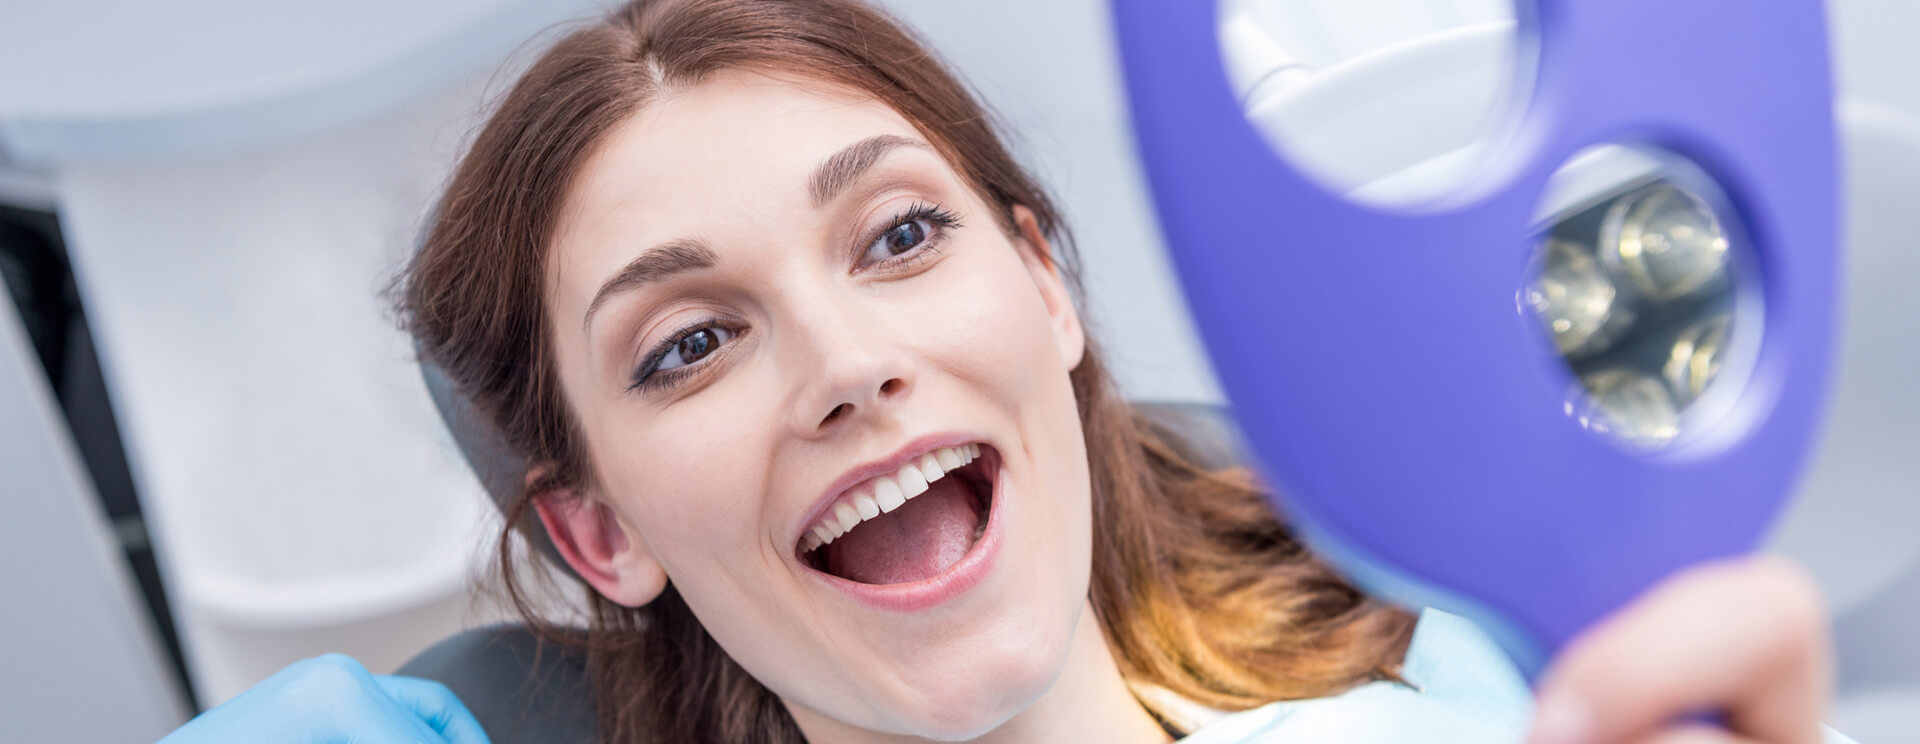 Young beautiful woman checking her new smile using a hand mirror